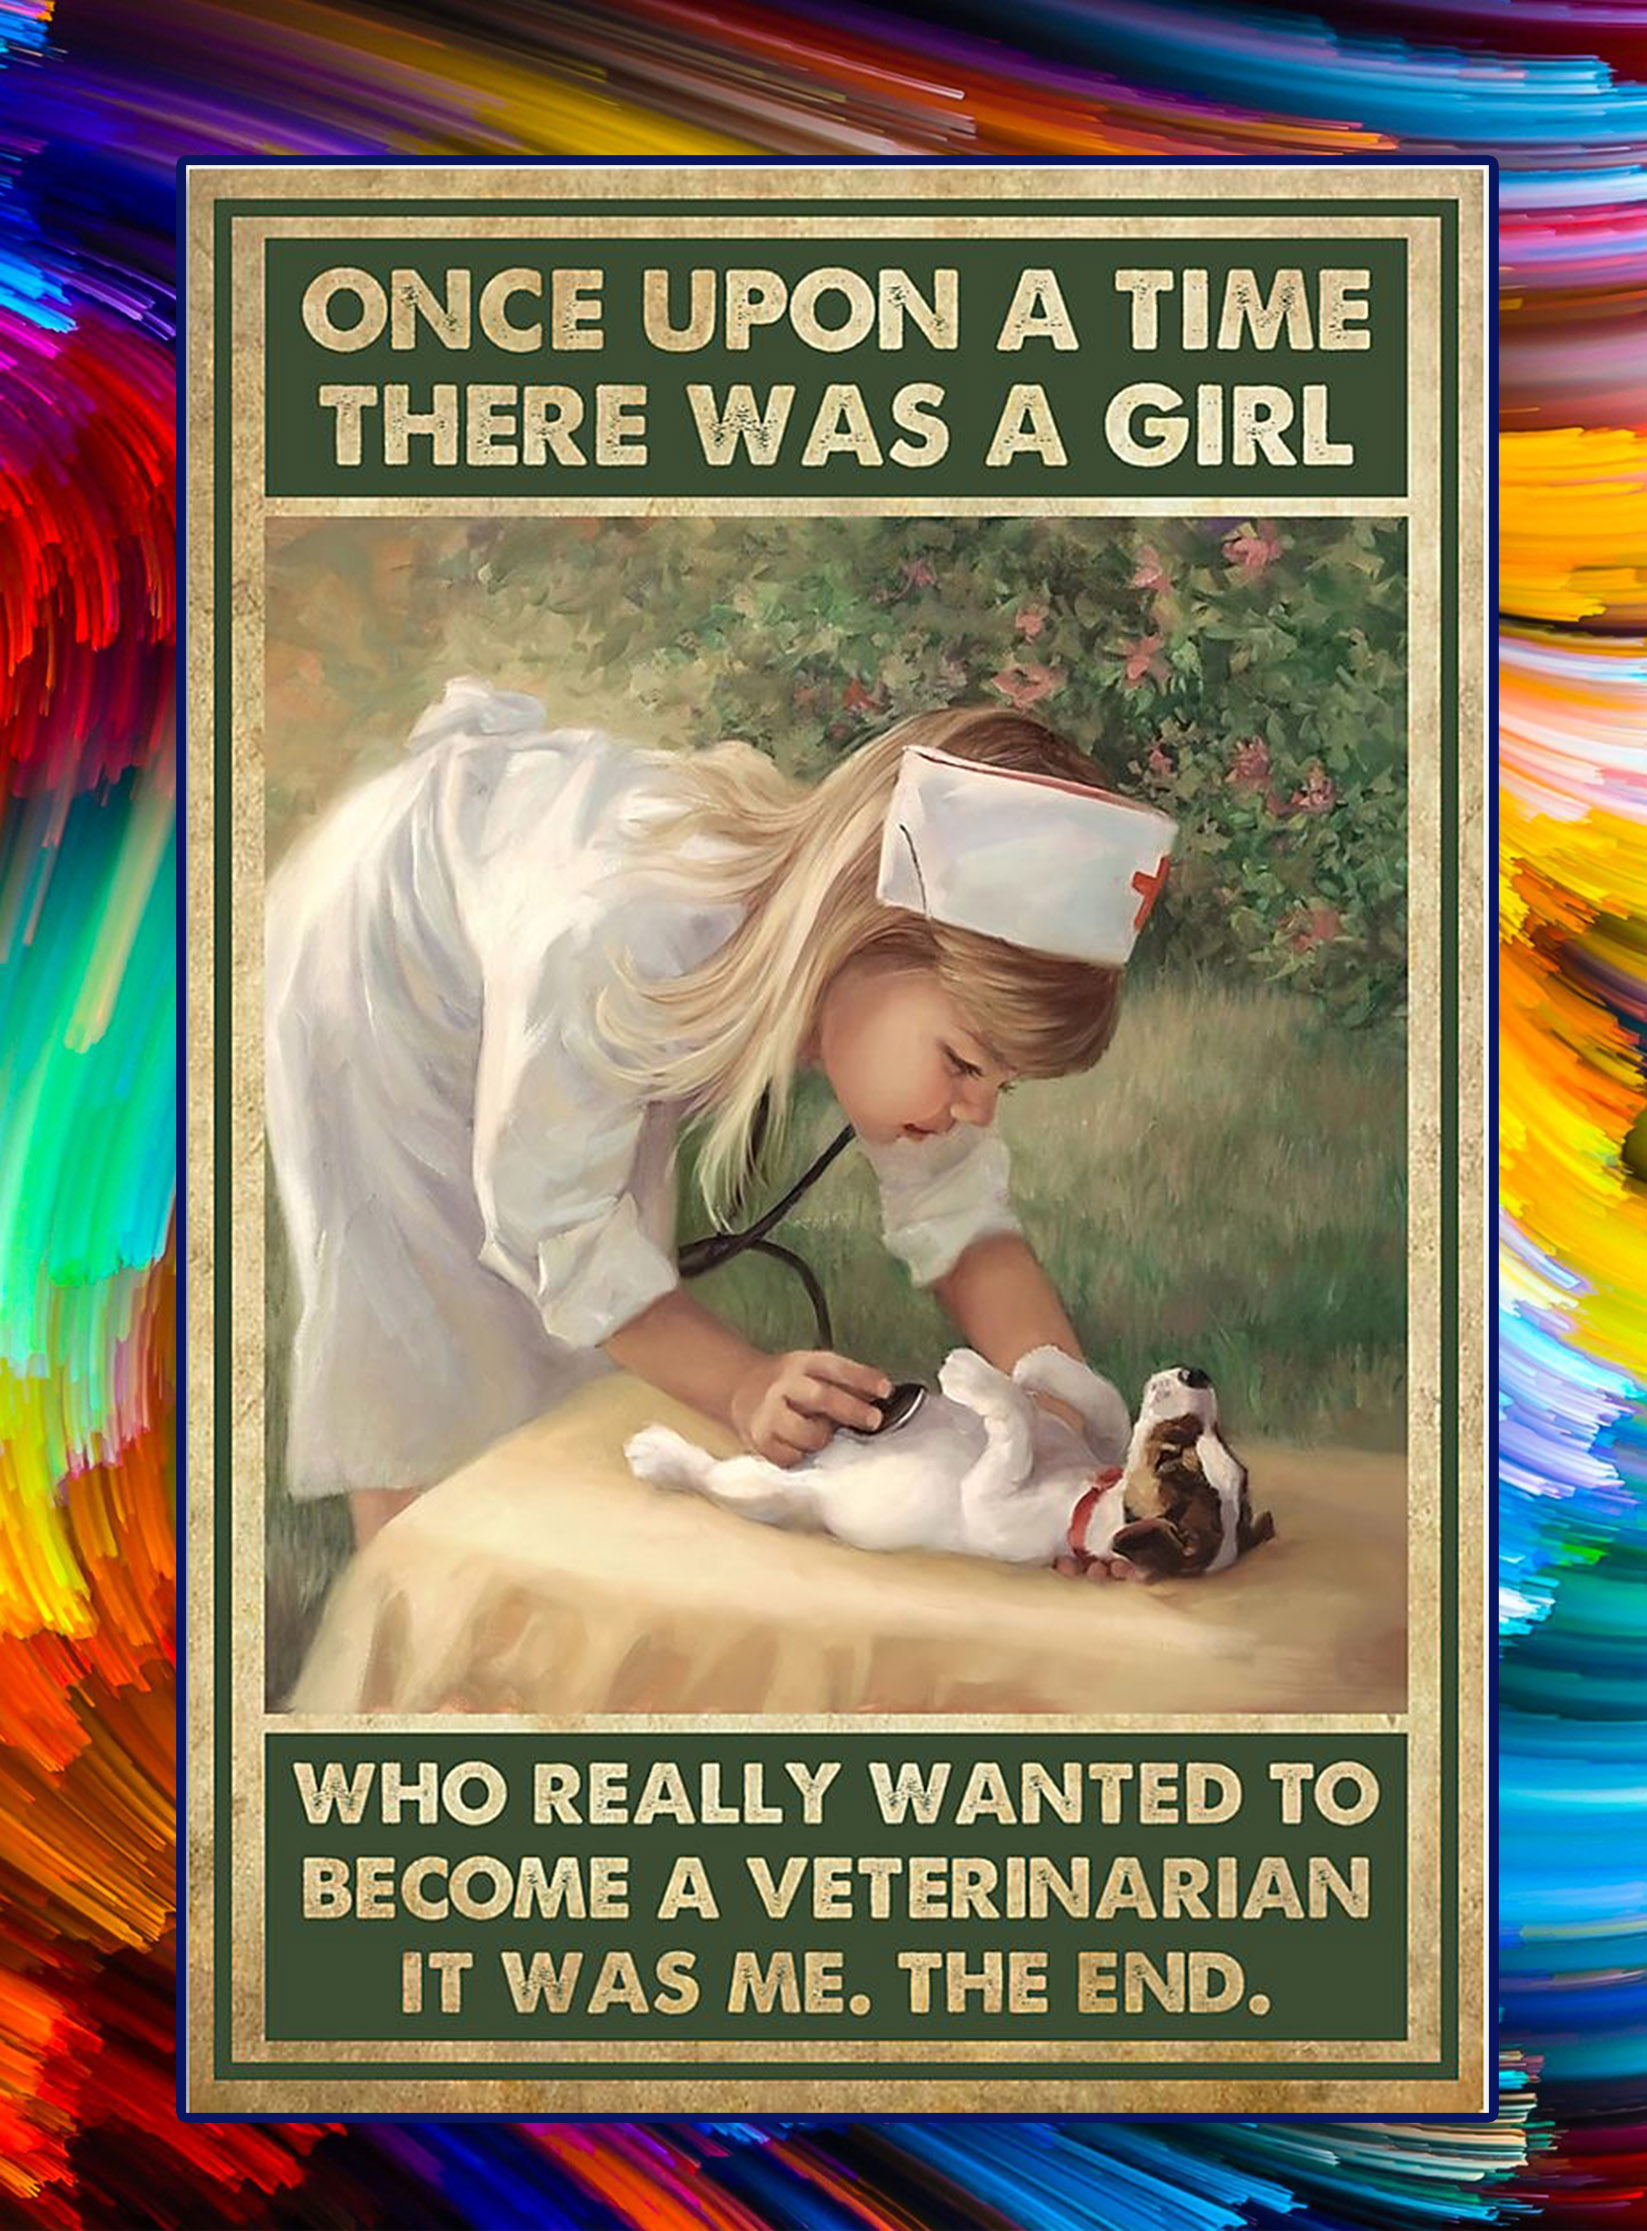 There was a girl who really wanted to become a veterinarian poster - A1